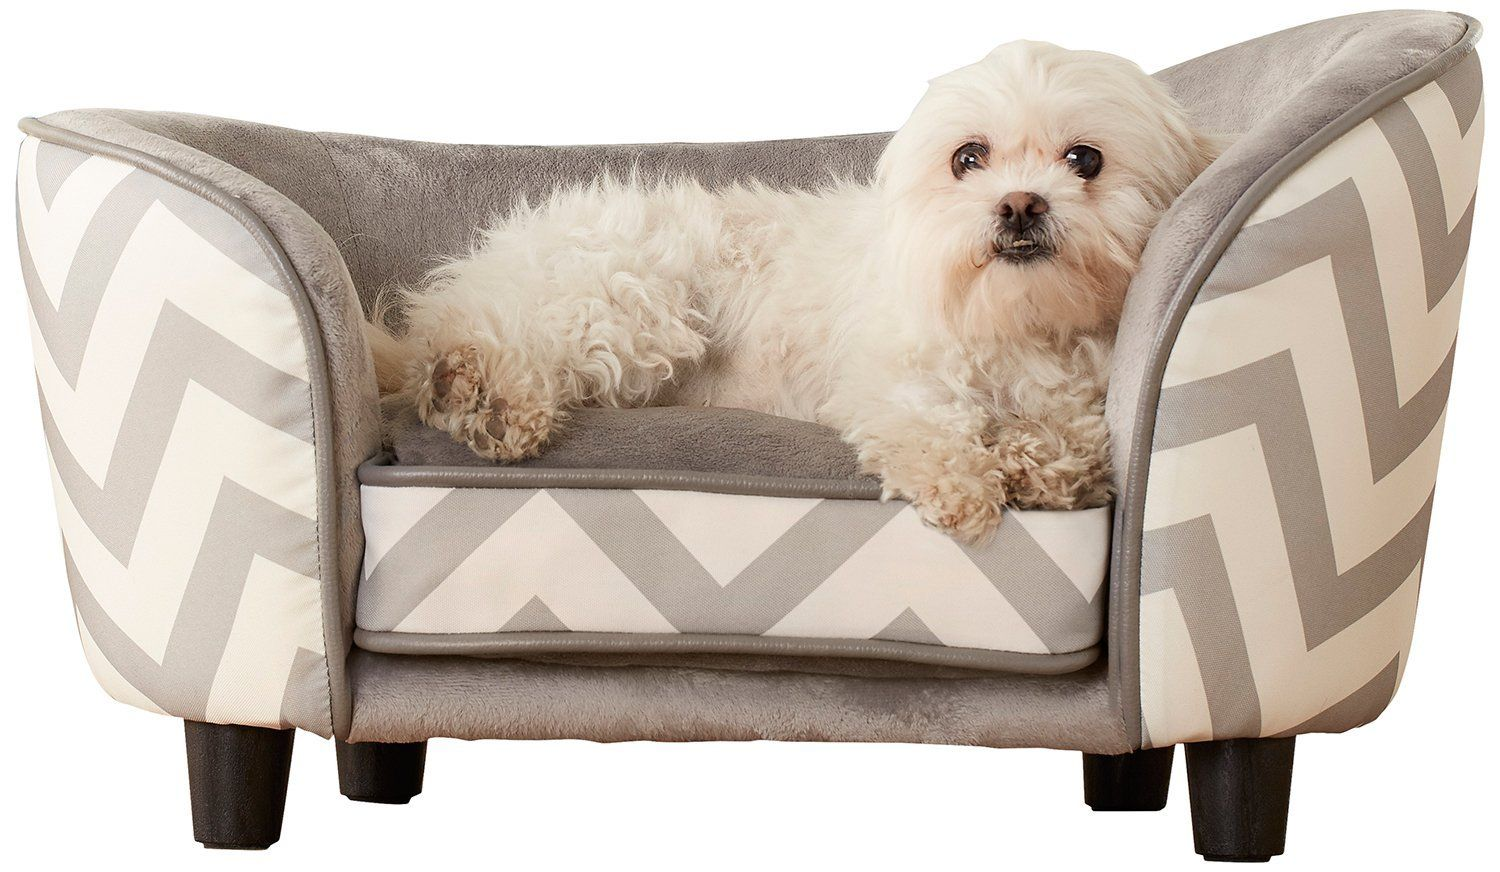 17 best images about dog beds that look like couch on